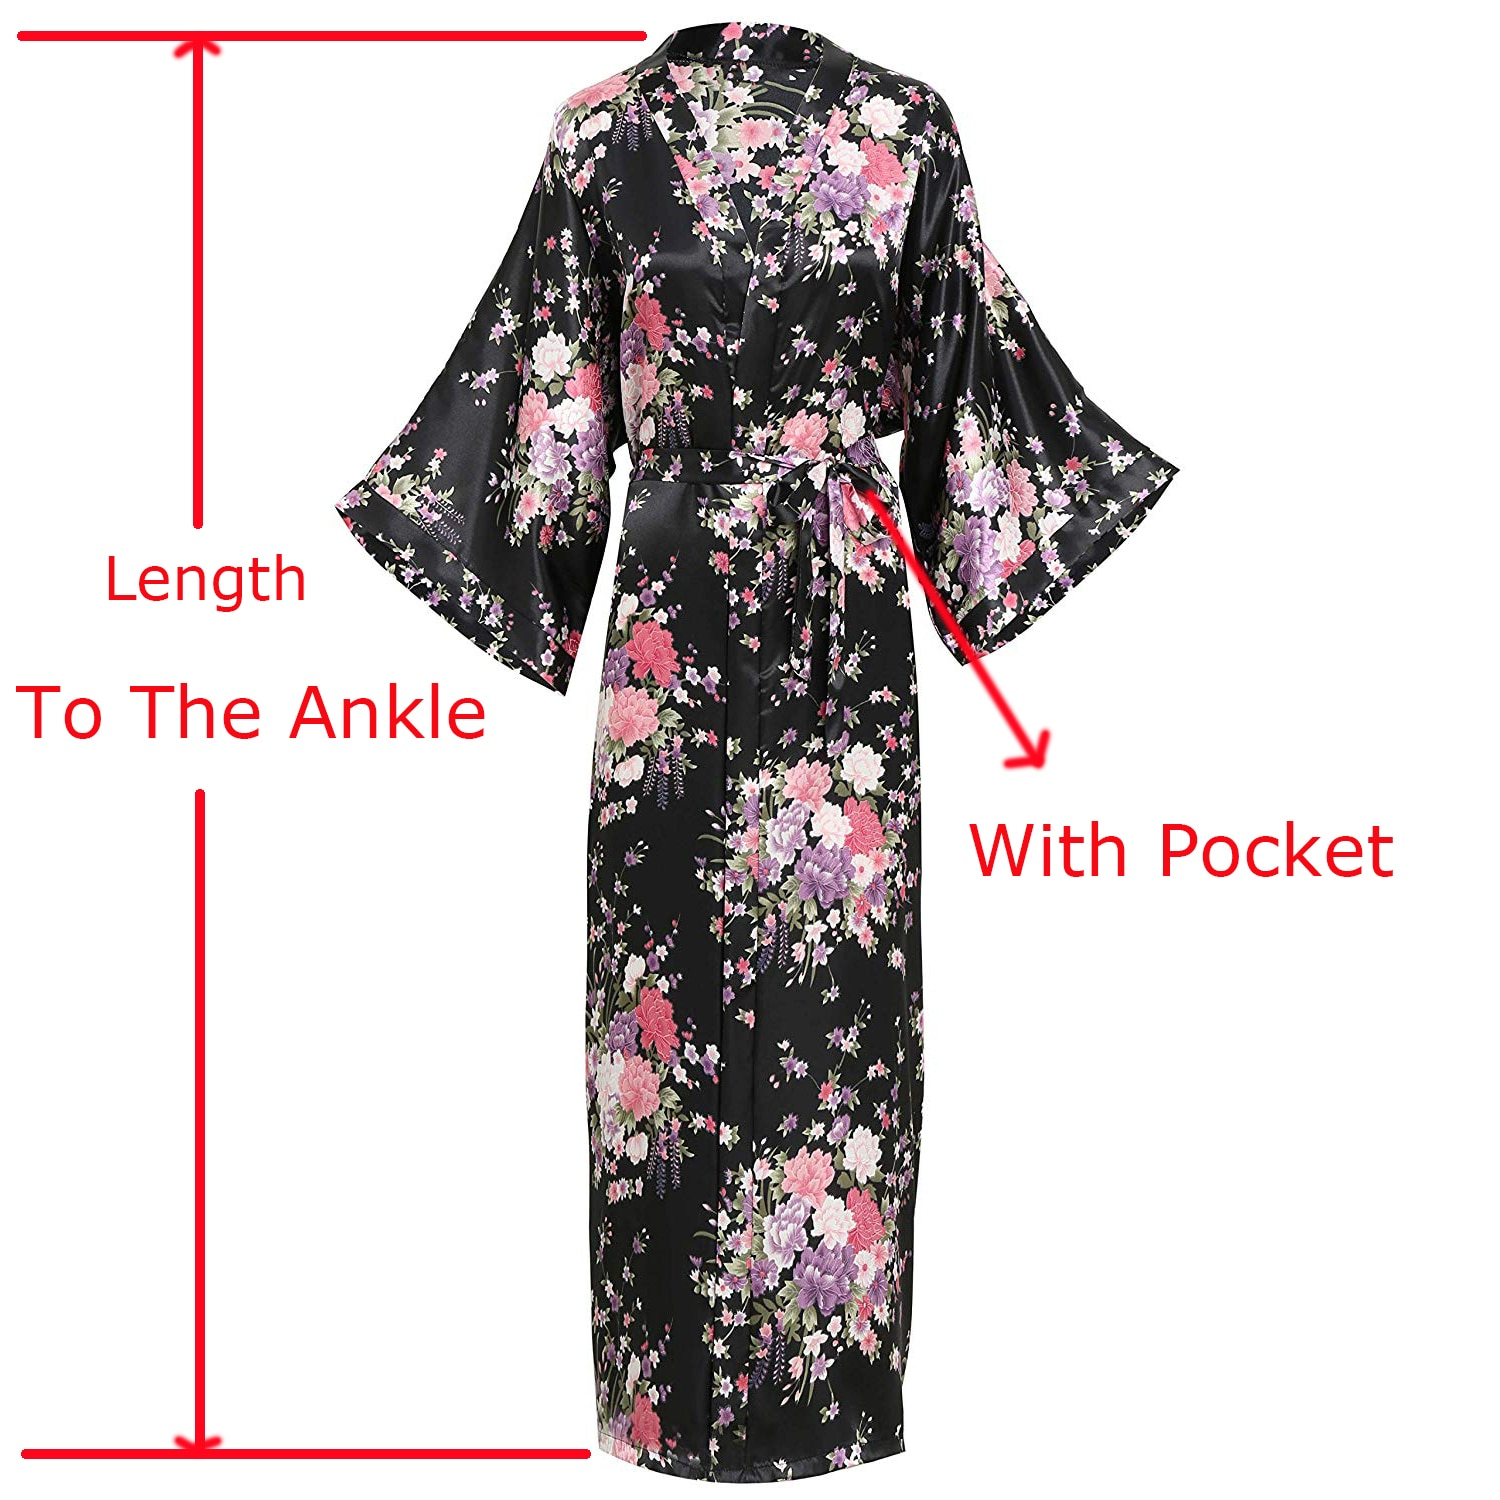 2019 sexy women long robe with pocket wedding bride bridesmaid dressing gown rayon kimono bathrobe large size m xl night dress Rayon Satin Lady Long Robe Print Flower Kimono Bathrobe Casual Sleepwear Home Clothes Plus Size Bride Bridesmaid Dressing Gown